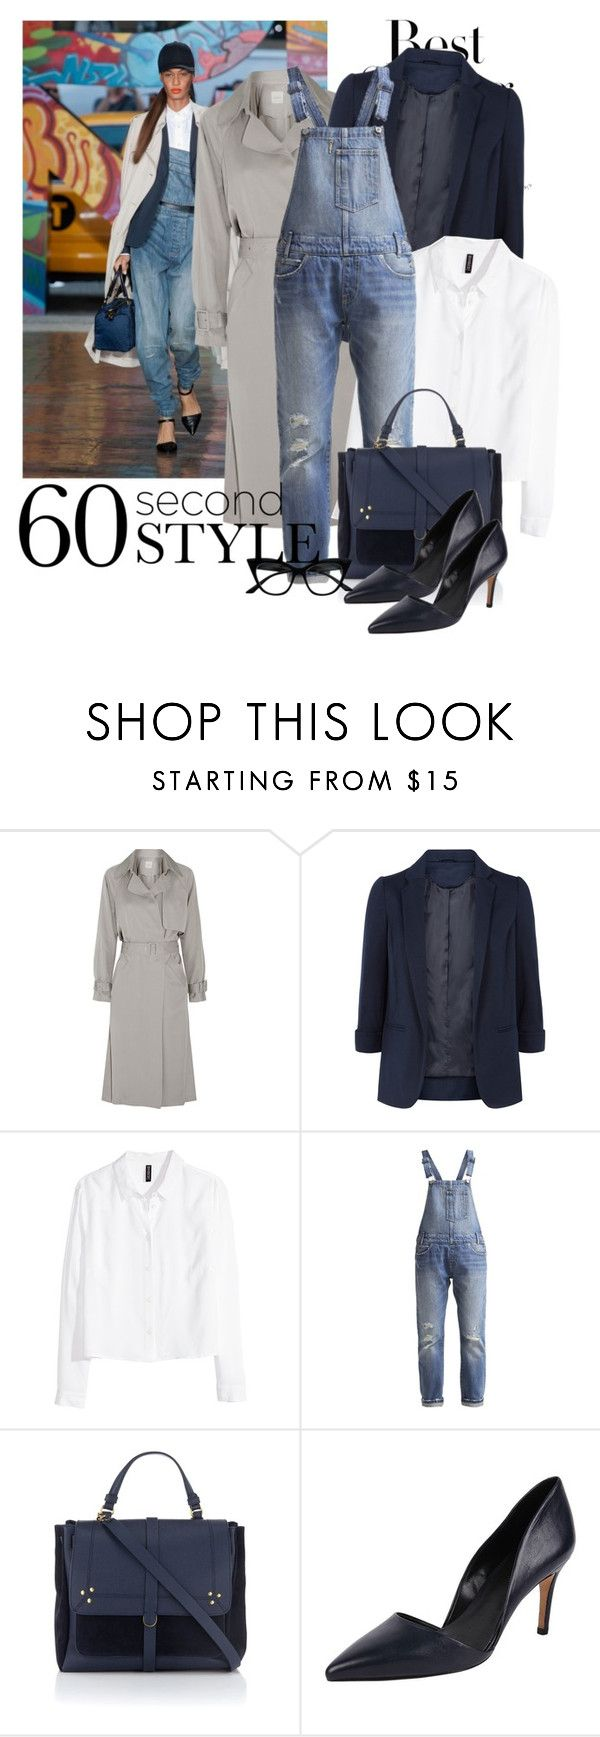 """Overalls To Work"" by tsungie ❤ liked on Polyvore featuring H&M, Mason by Michelle Mason, Monsoon, Levi's, Jérôme Dreyfuss, Charles David and Retrò"